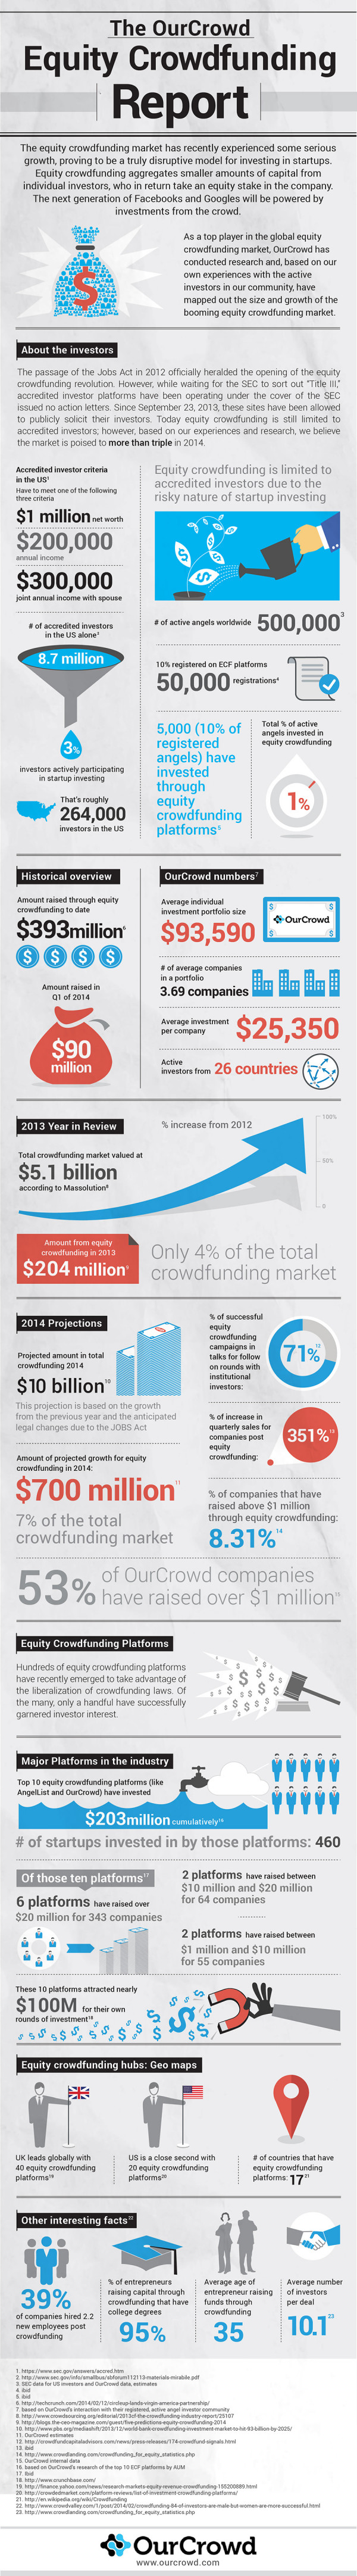 The OurCrowd Equity Crowdfunding Report (2014)